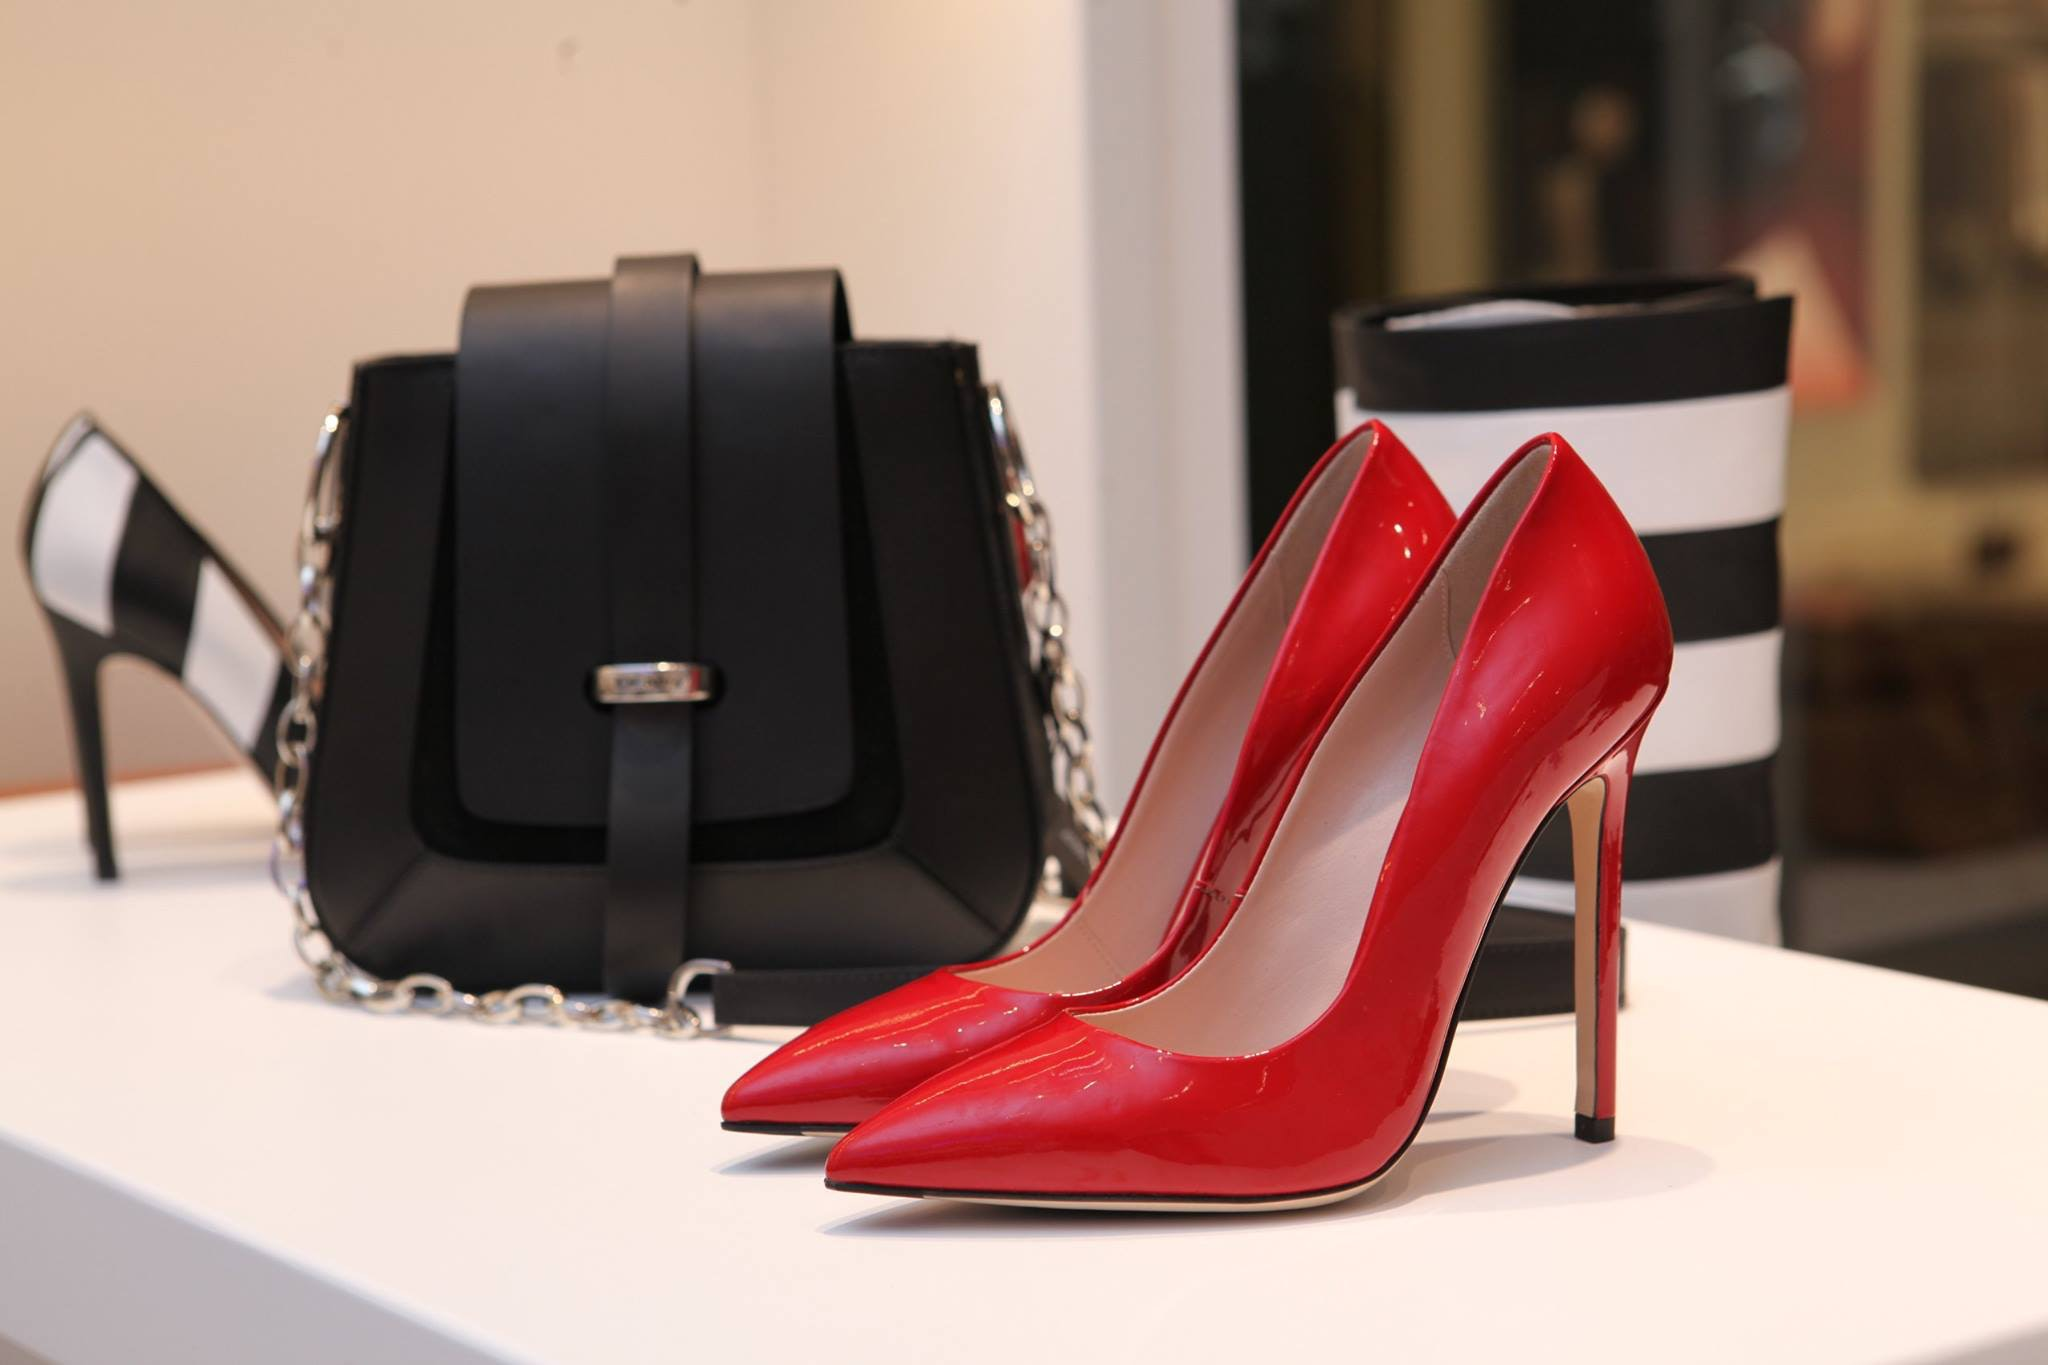 High heel shoes on display in store